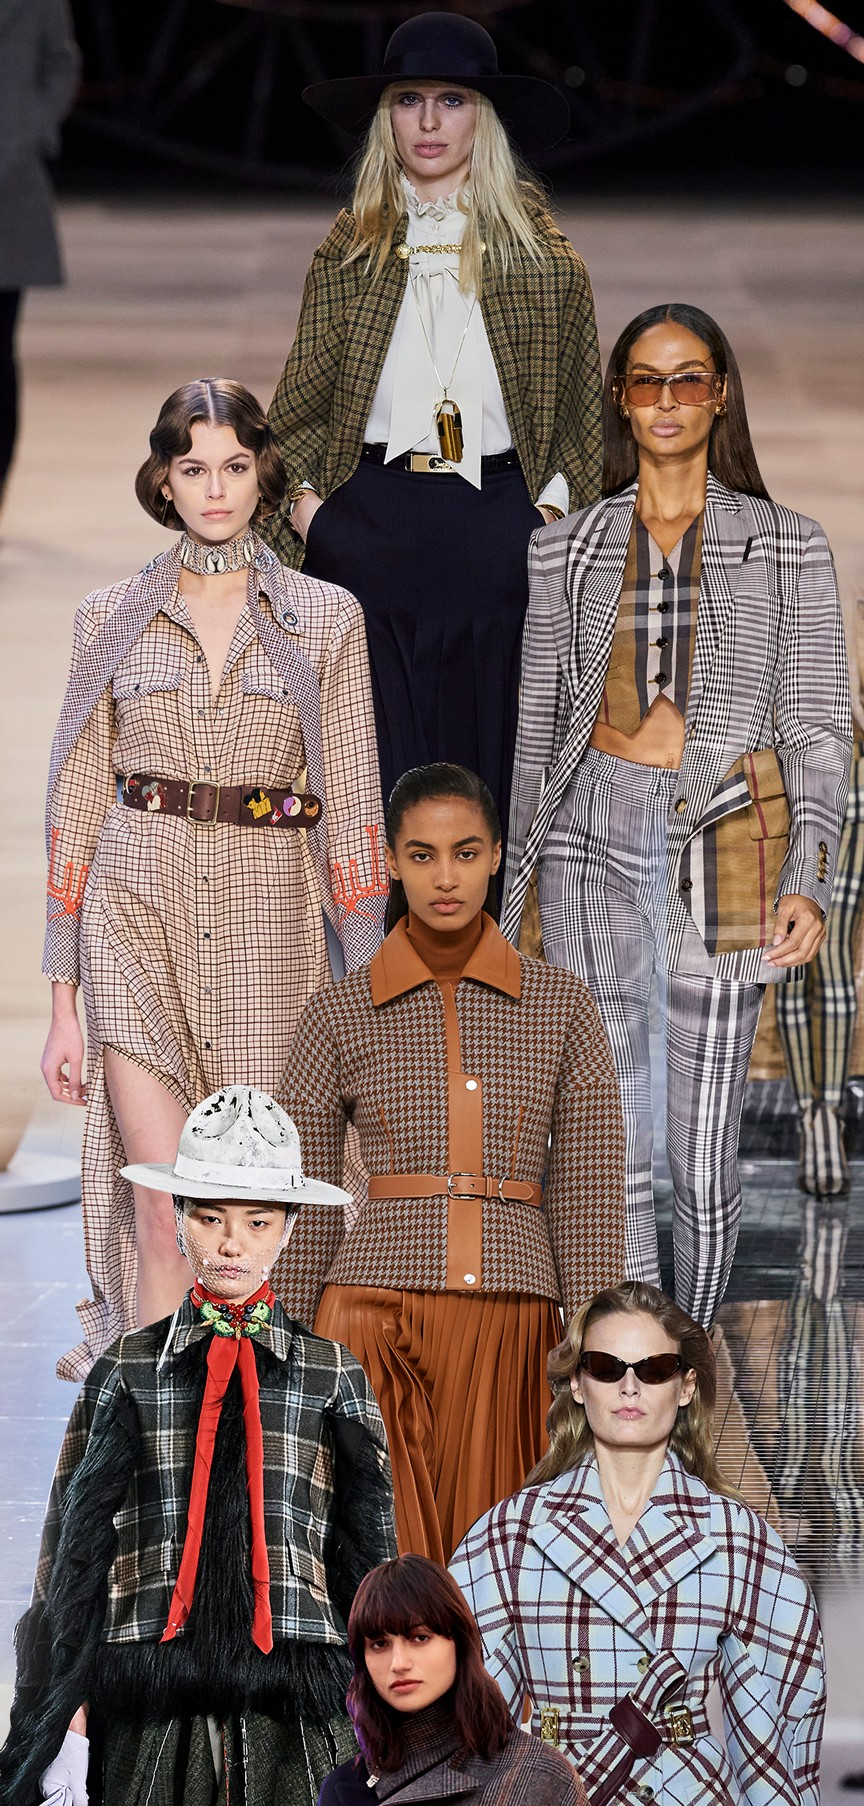 The Hottest And Most Coveted Fashion Trends From The Fall 2020 Runways (23) fashion trend The Hottest And Most Coveted Fashion Trends From The Fall 2020 Runways The Hottest And Most Coveted Fashion Trends From The Fall 2020 Runways 23 1